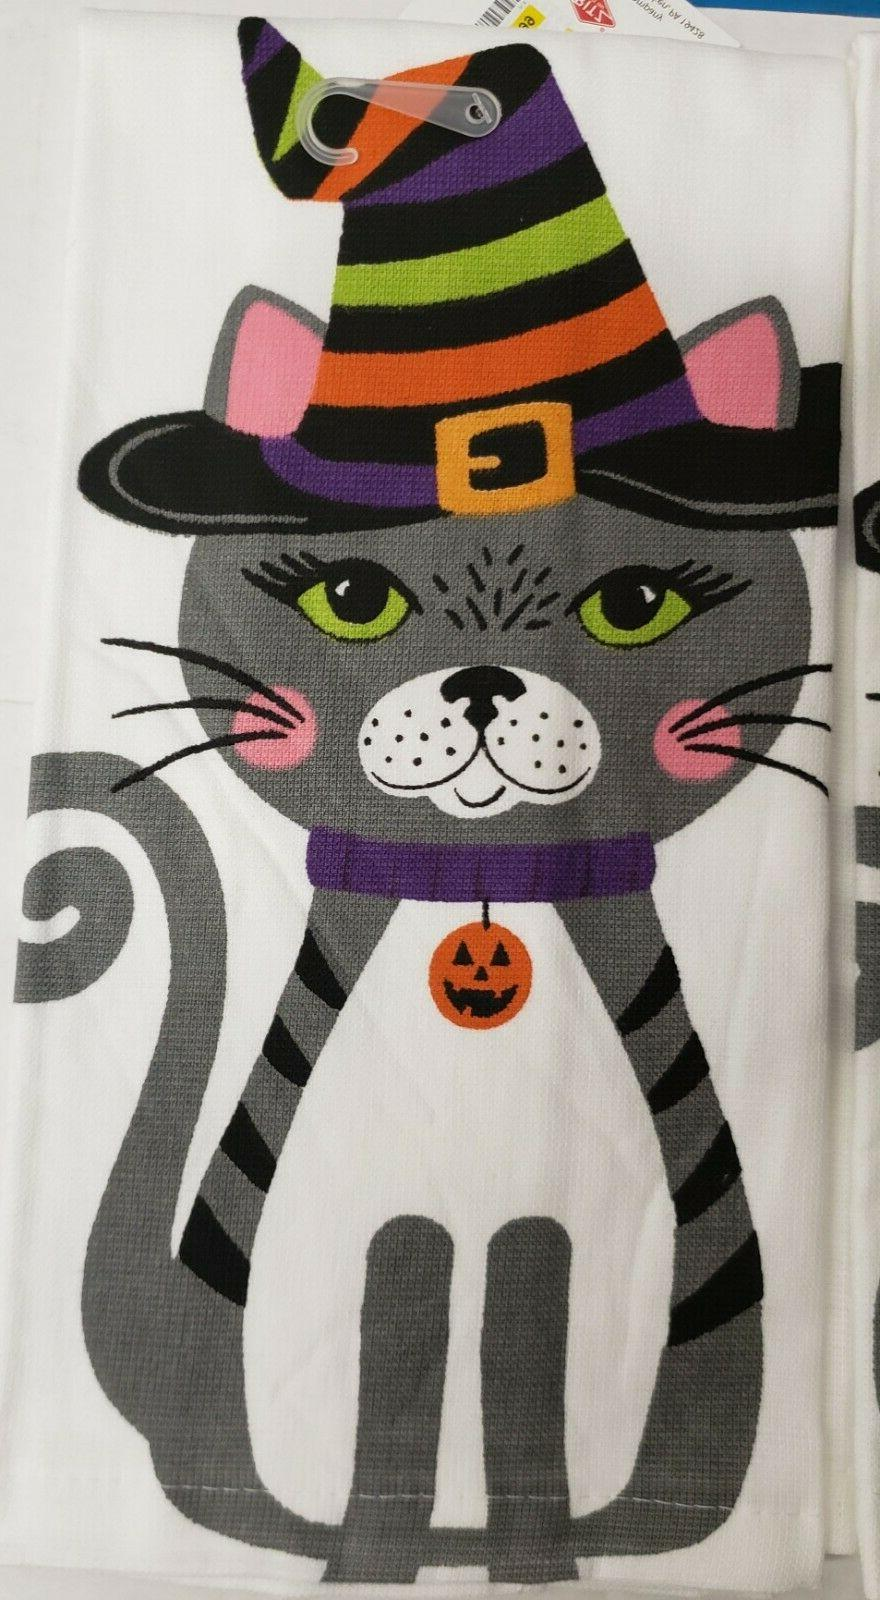 2 COTTON TERRY TOWELS CAT & DOG,